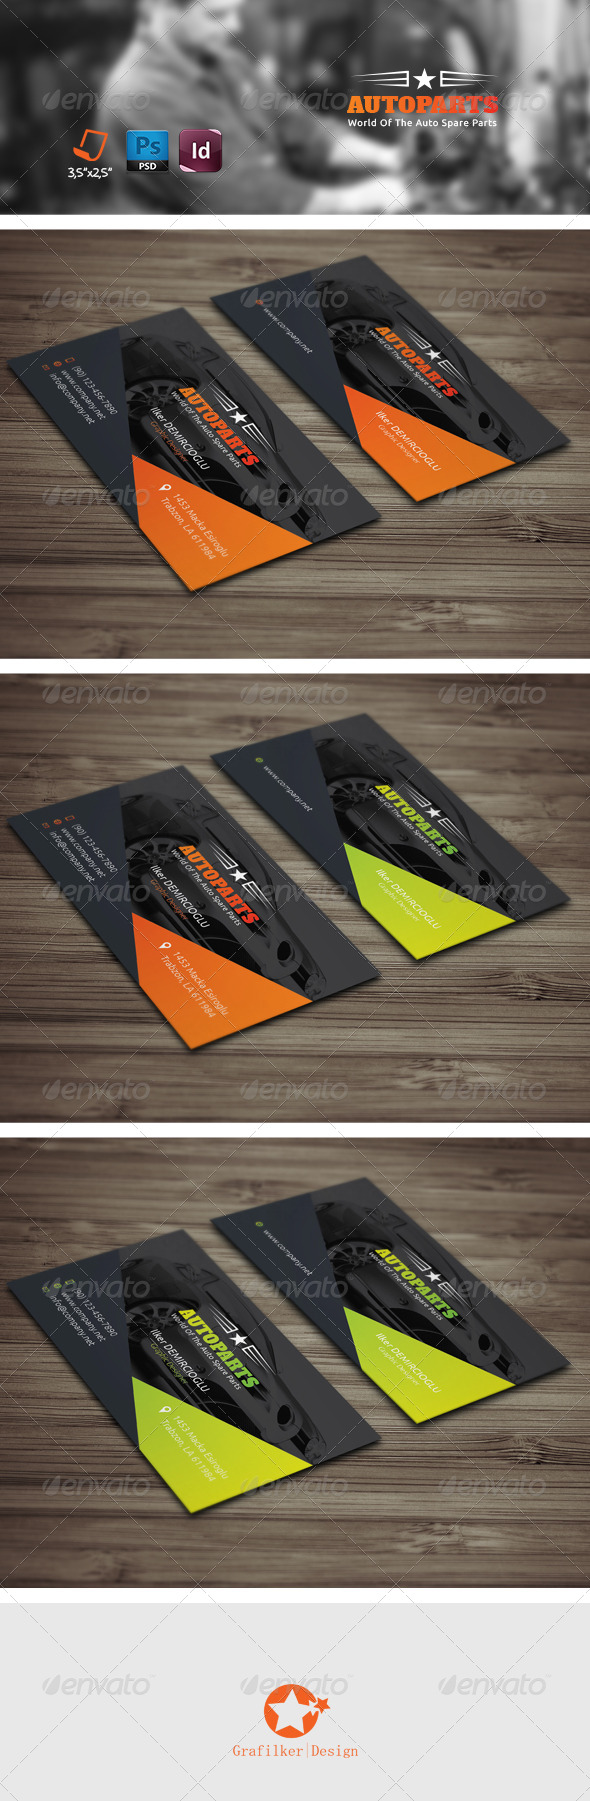 Auto drift graphics designs templates from graphicriver reheart Gallery